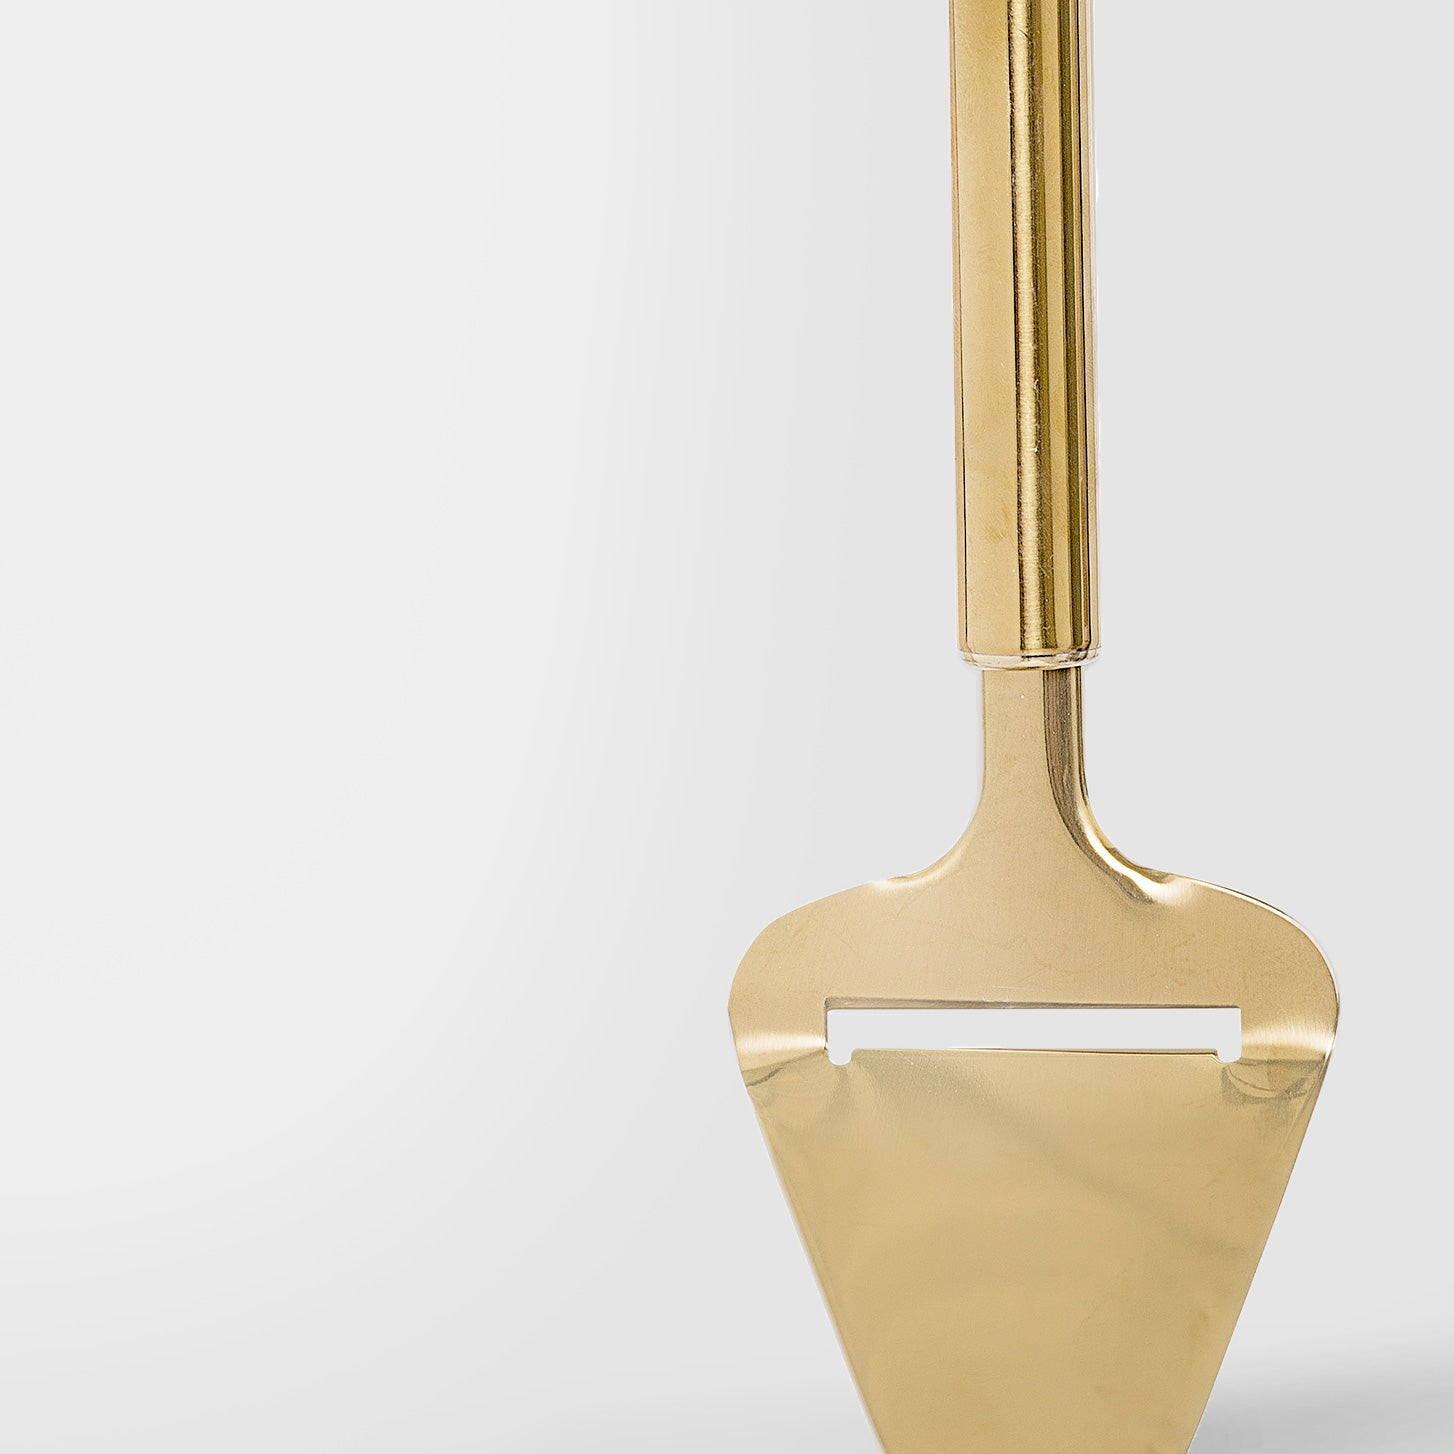 Gold tone cheese slicer